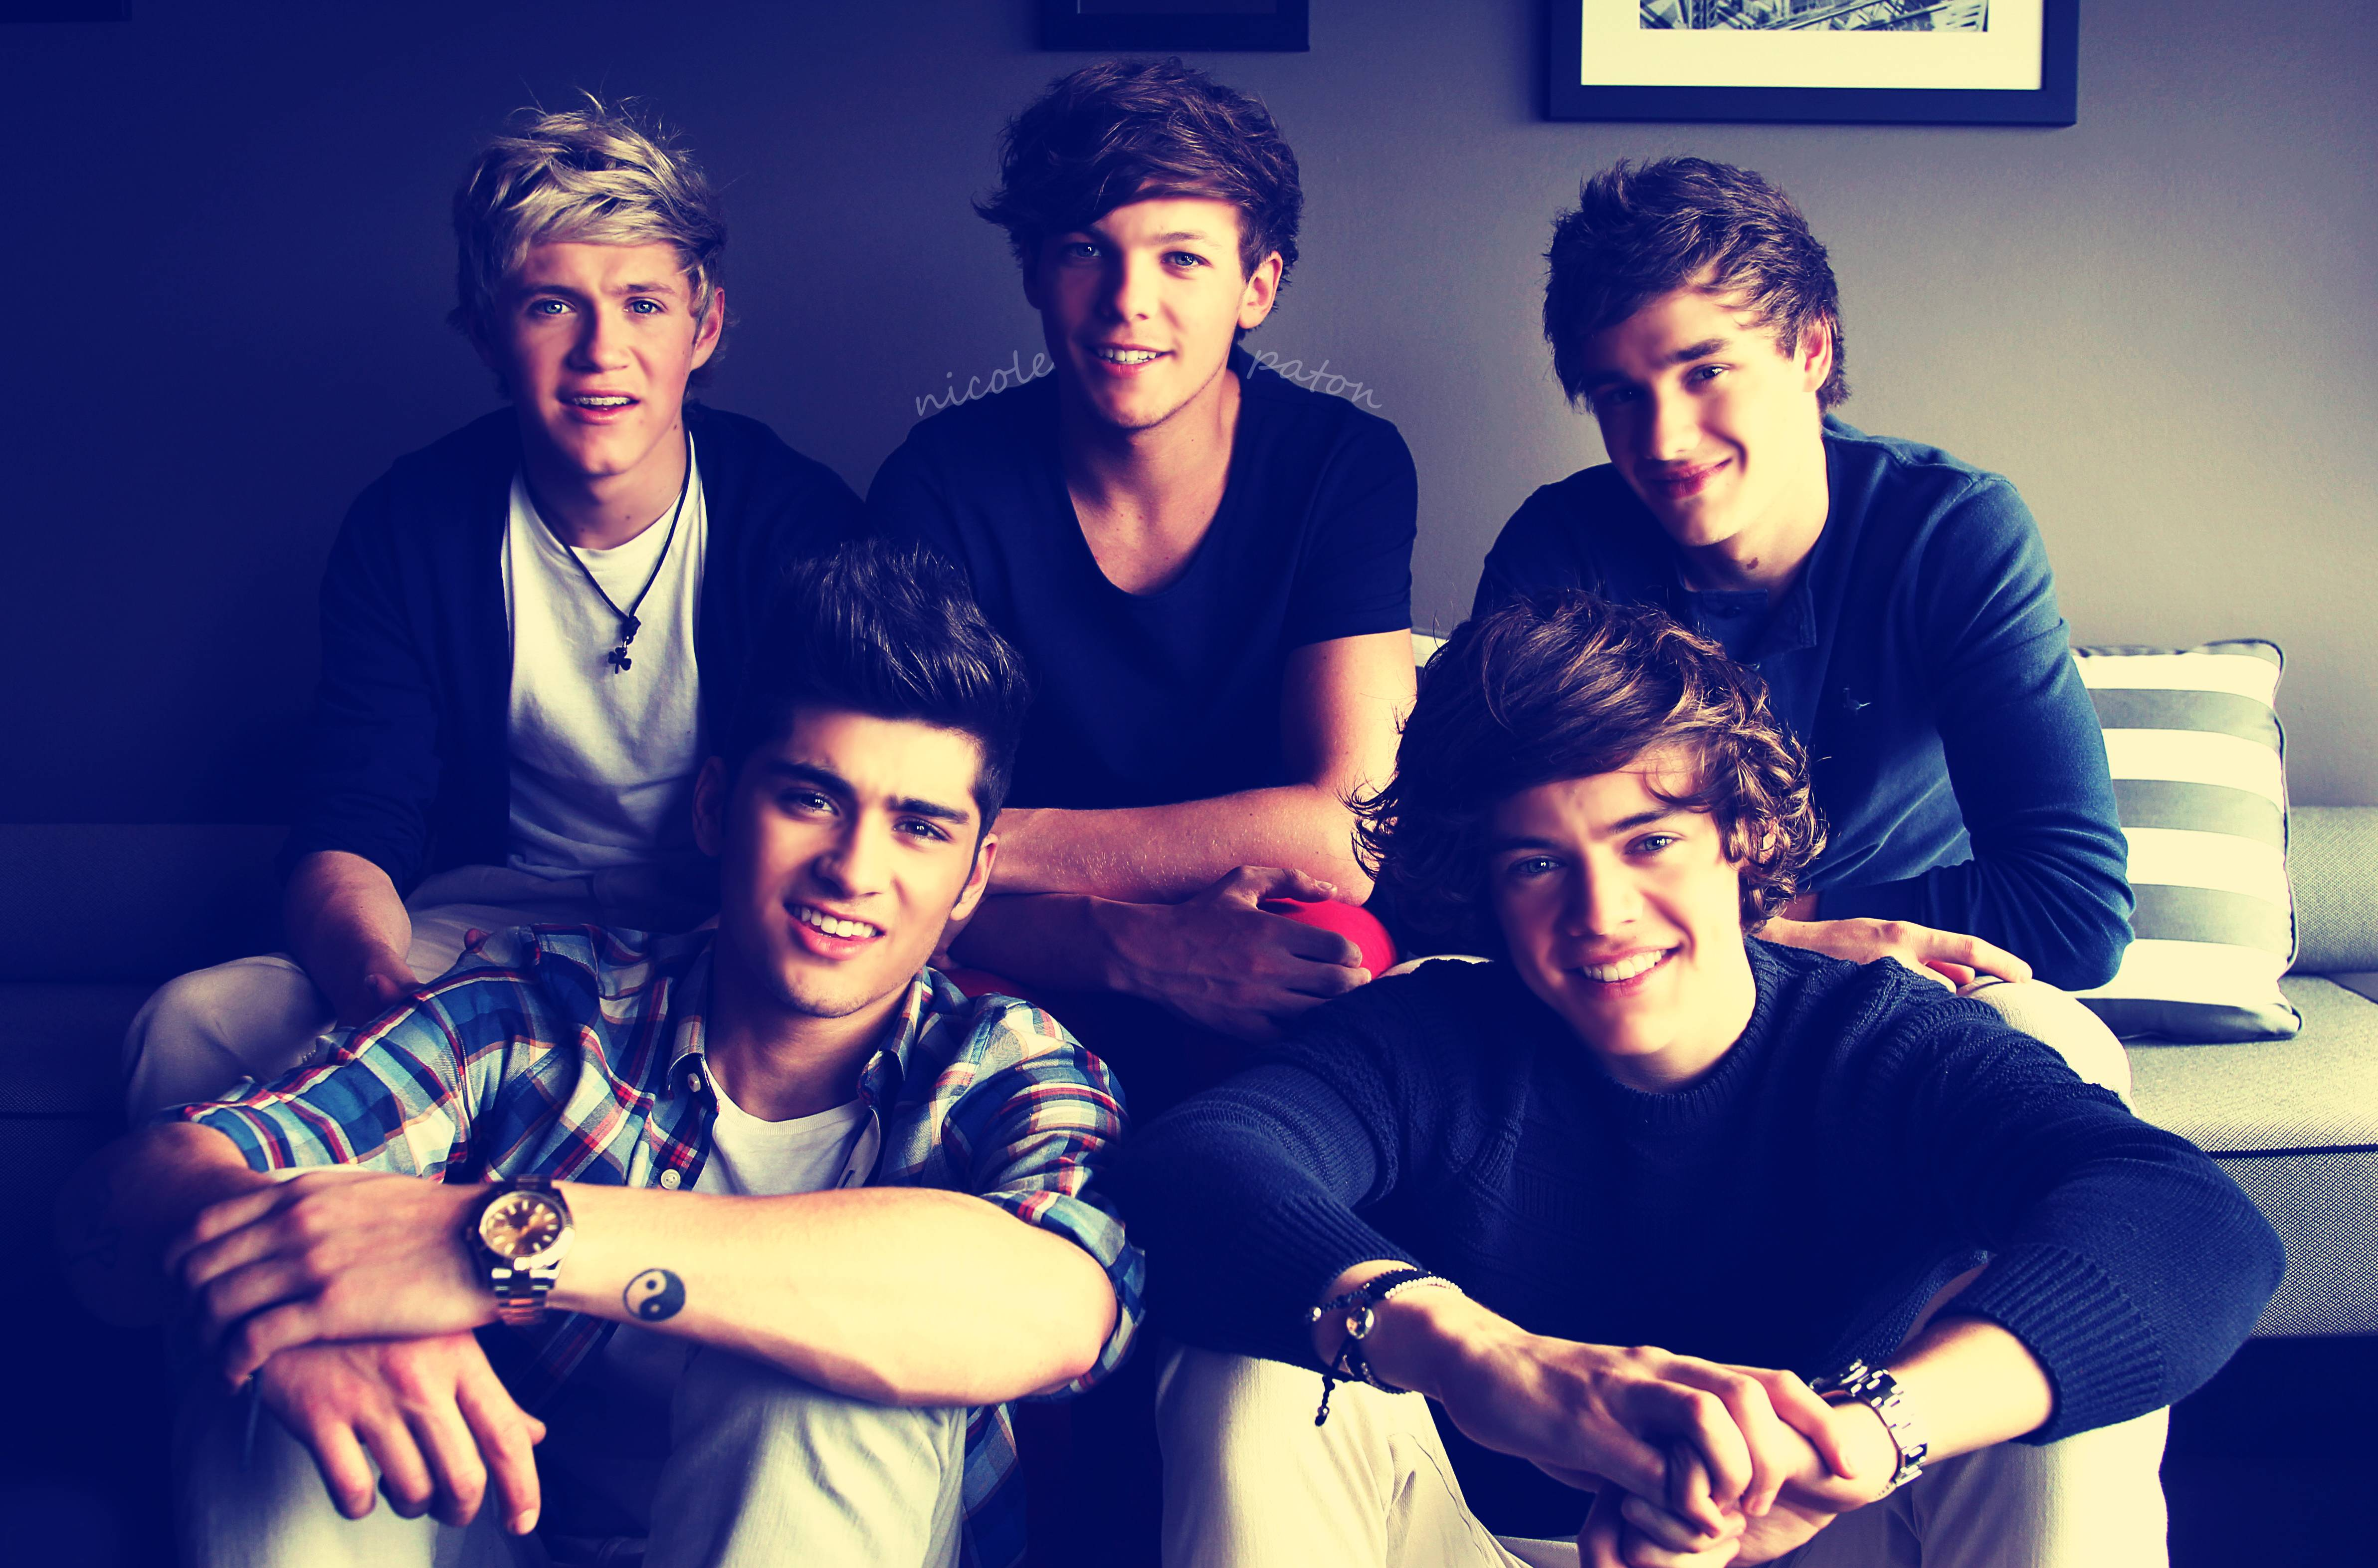 Wallpaper Of One Direction